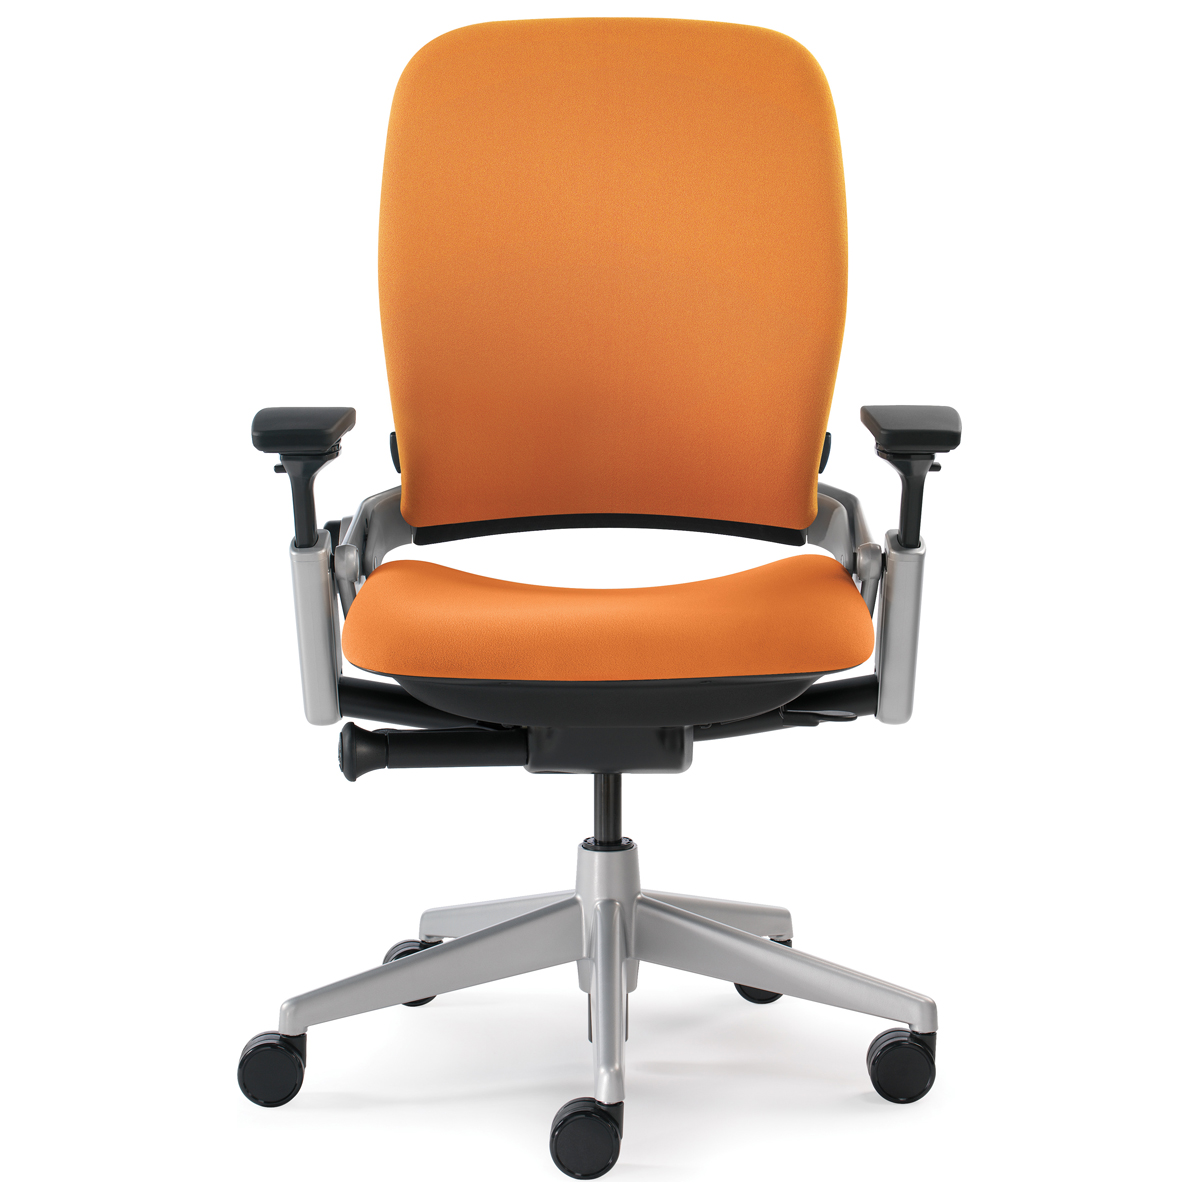 Ergonomic Office Chairs Download Free Leap Chair By Steelcase Manual Software